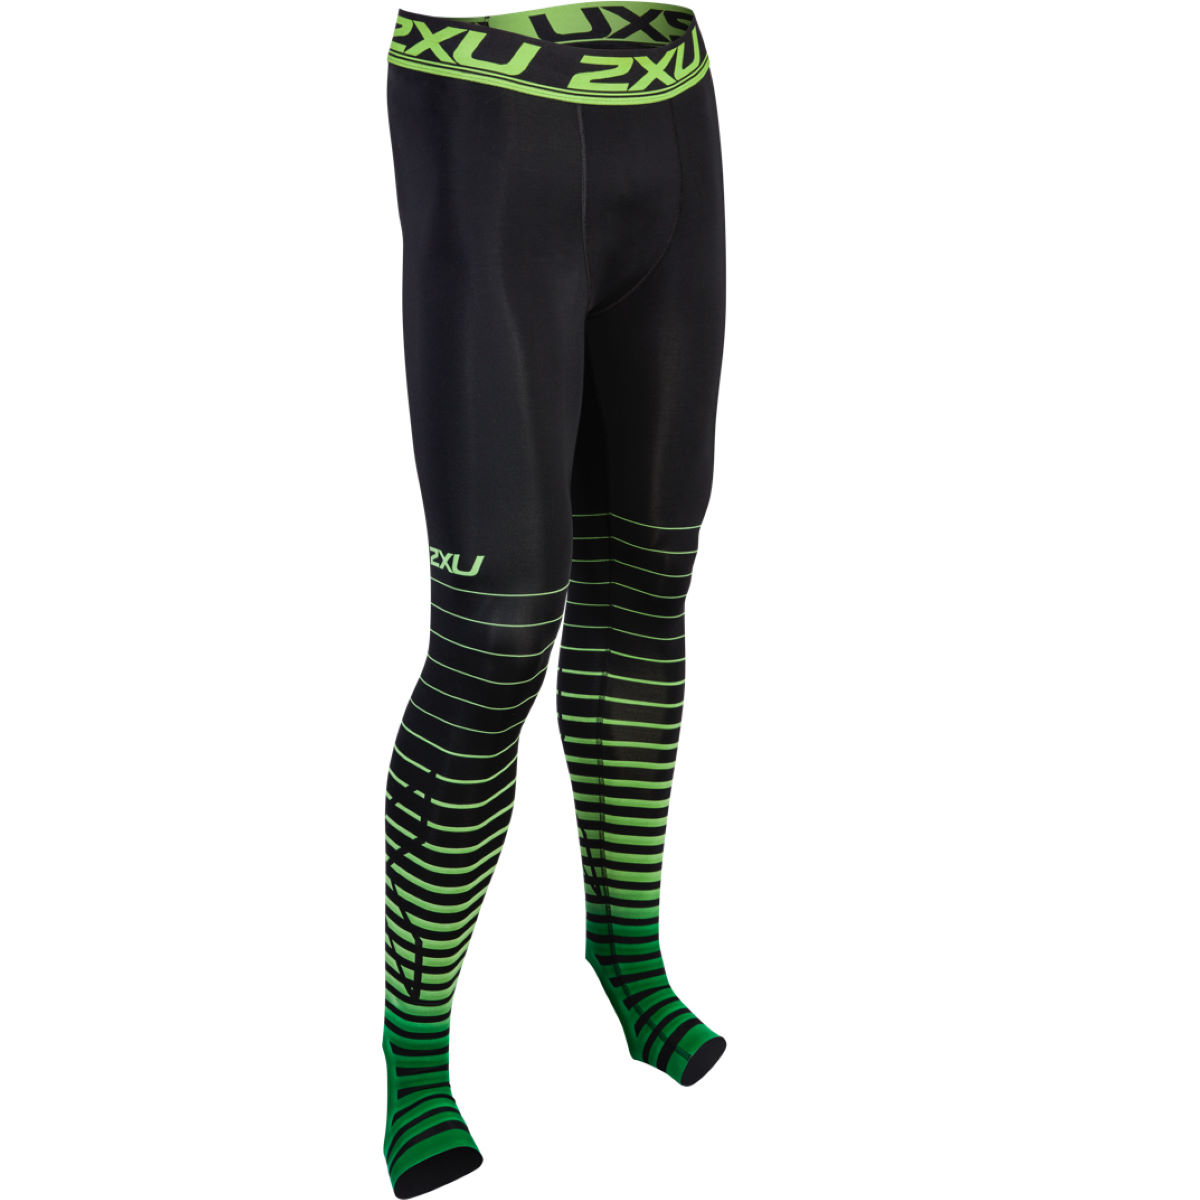 2Xu 2XU Power Recovery Compression Tights   Compression Tights